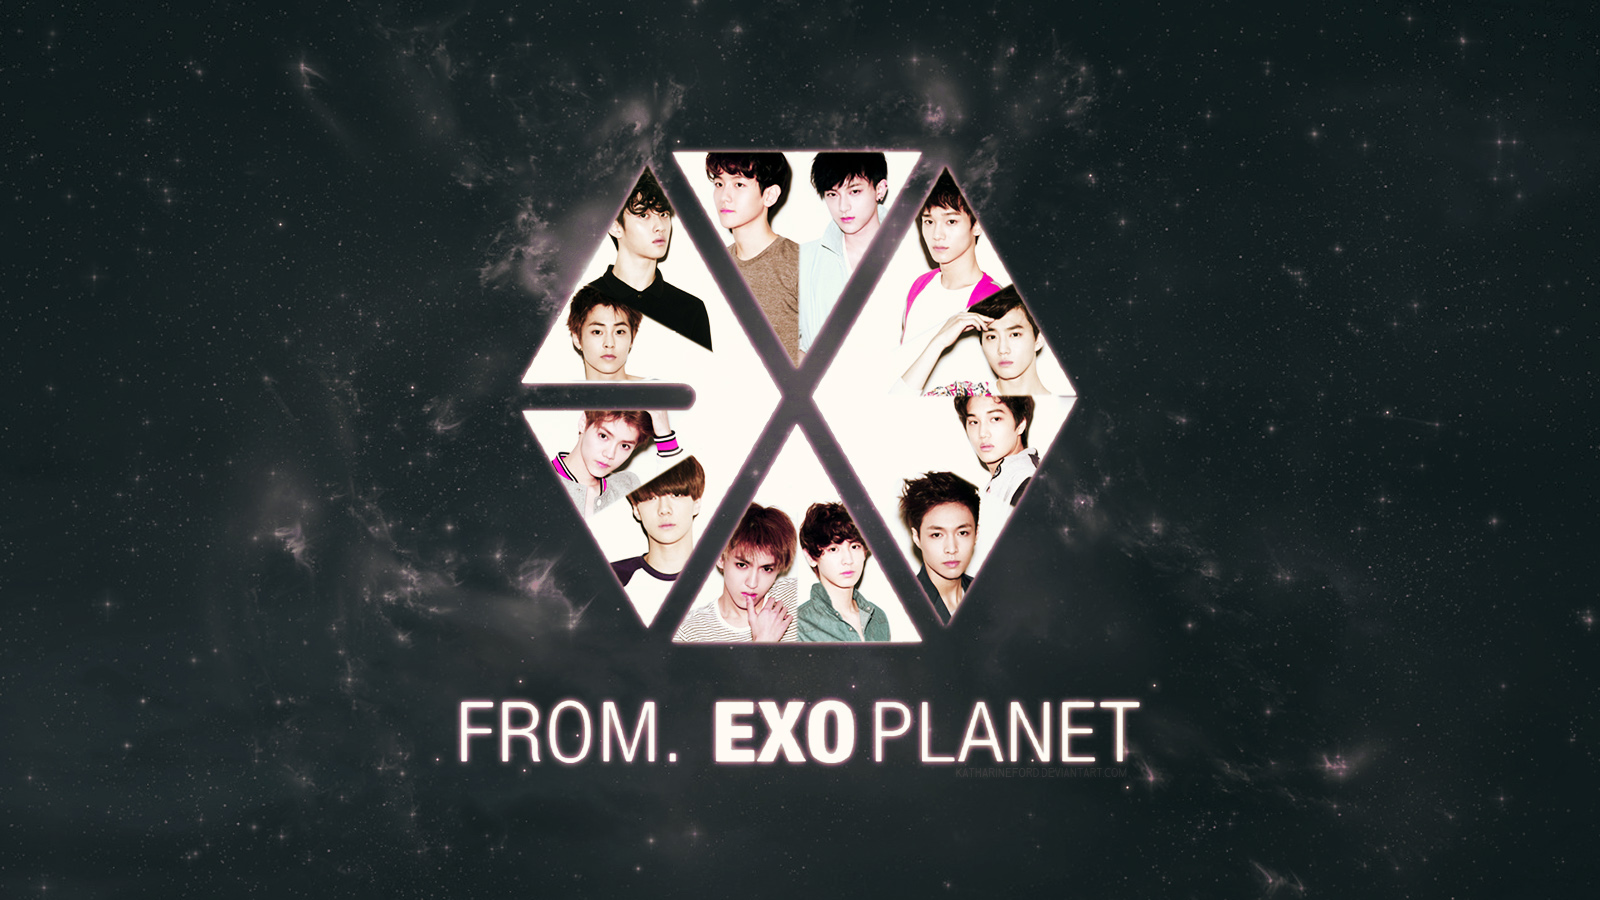 Exo Tumblr Backgrounds Images & Pictures - Becuo